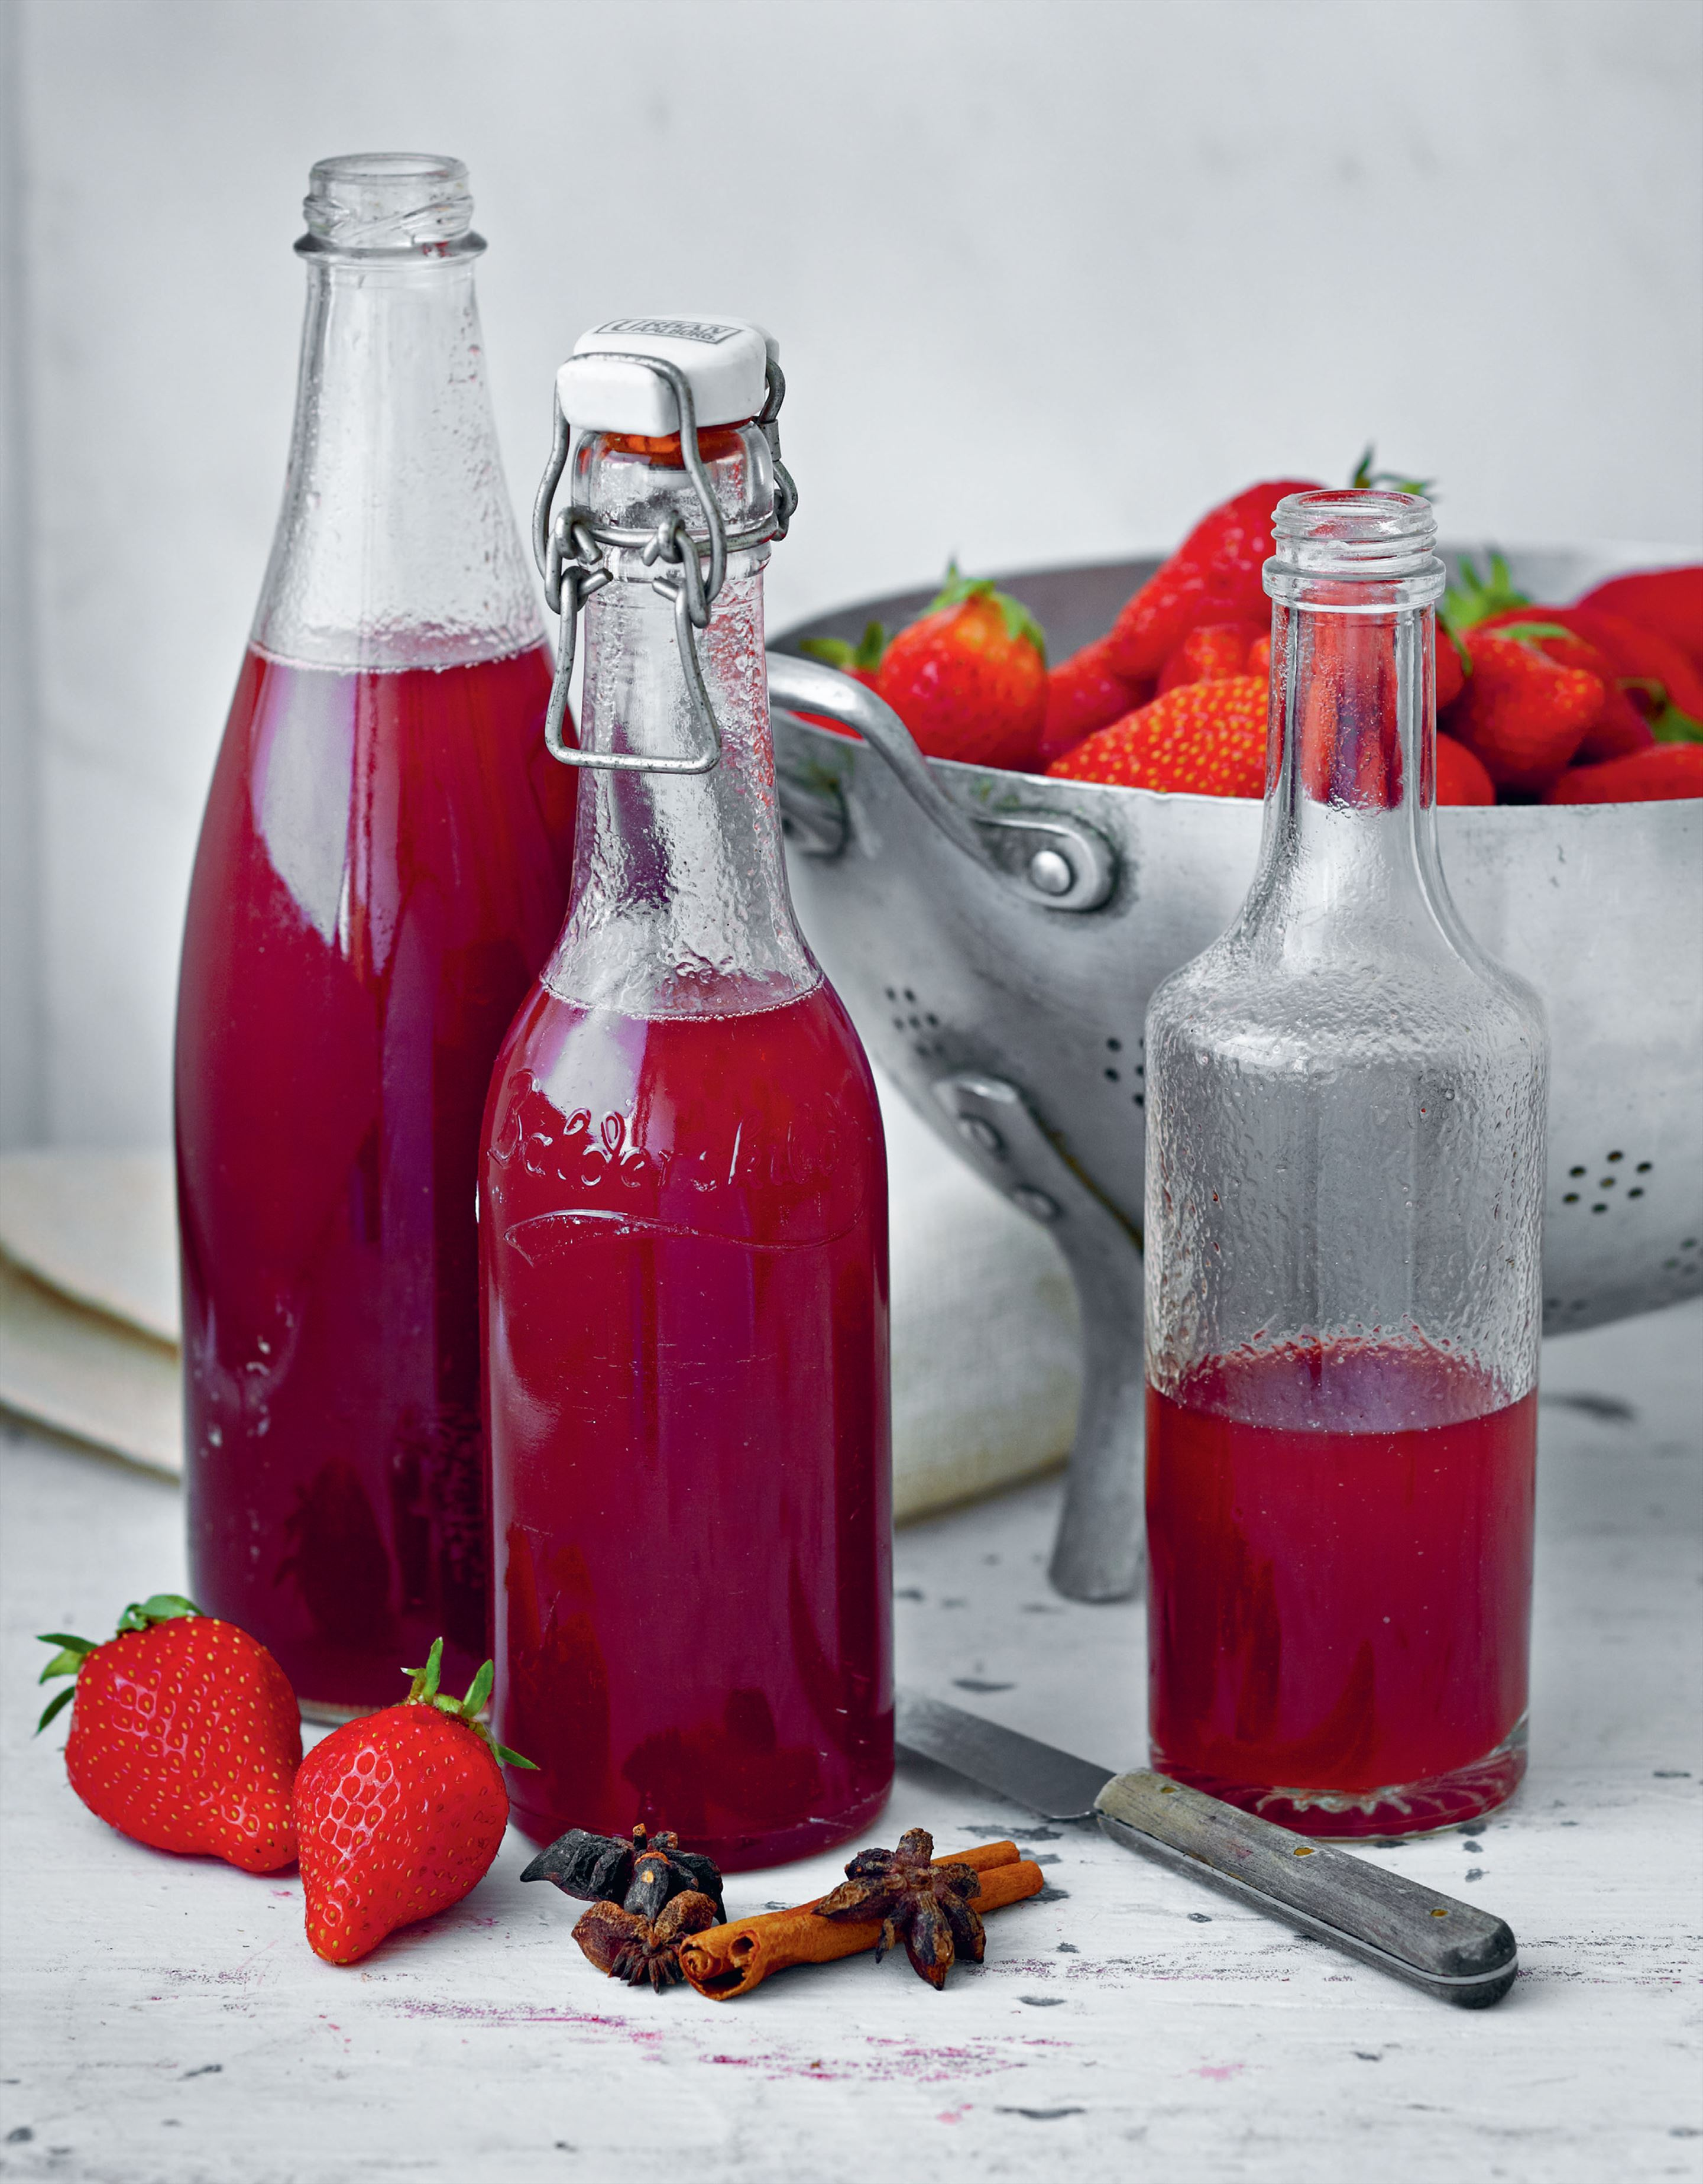 Spiced strawberry syrup